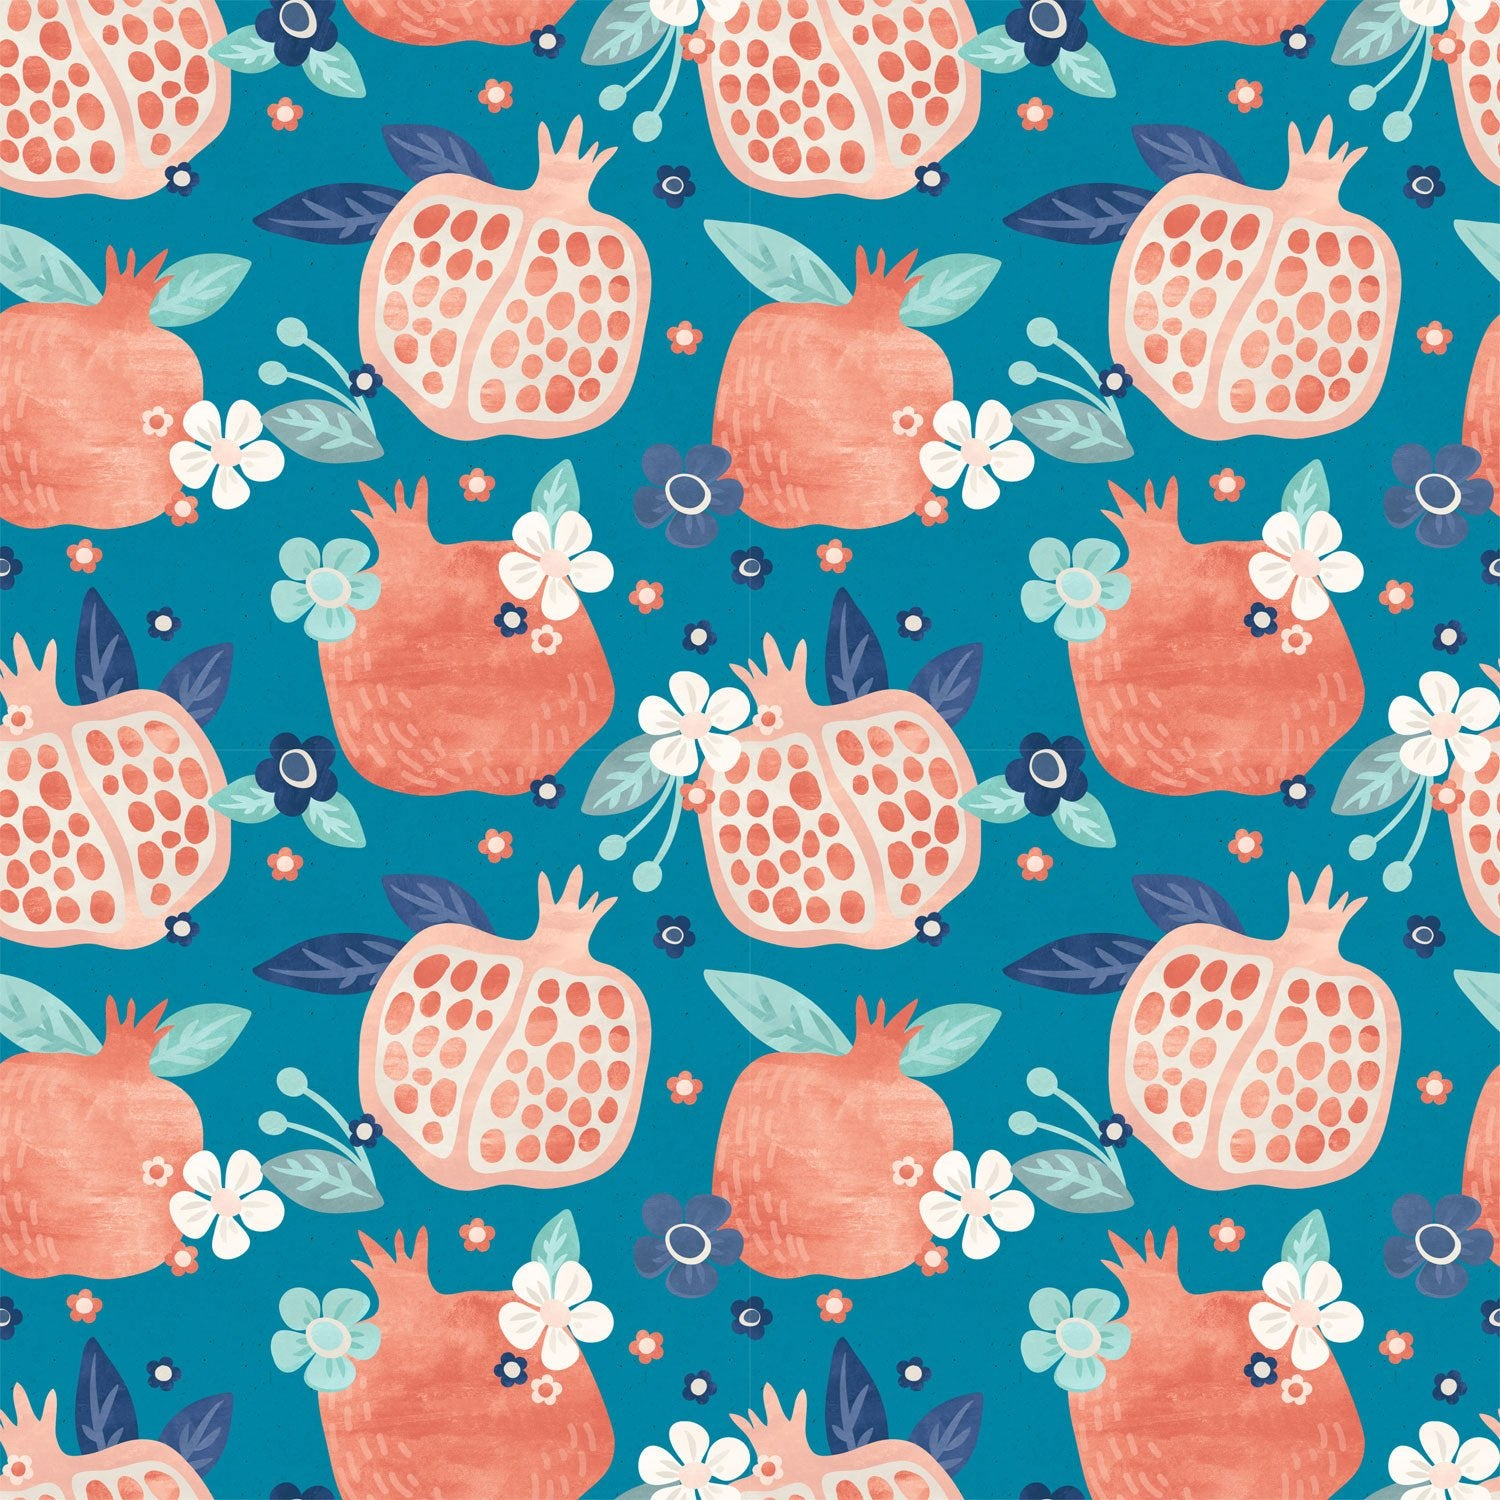 pomegranate wallpaper